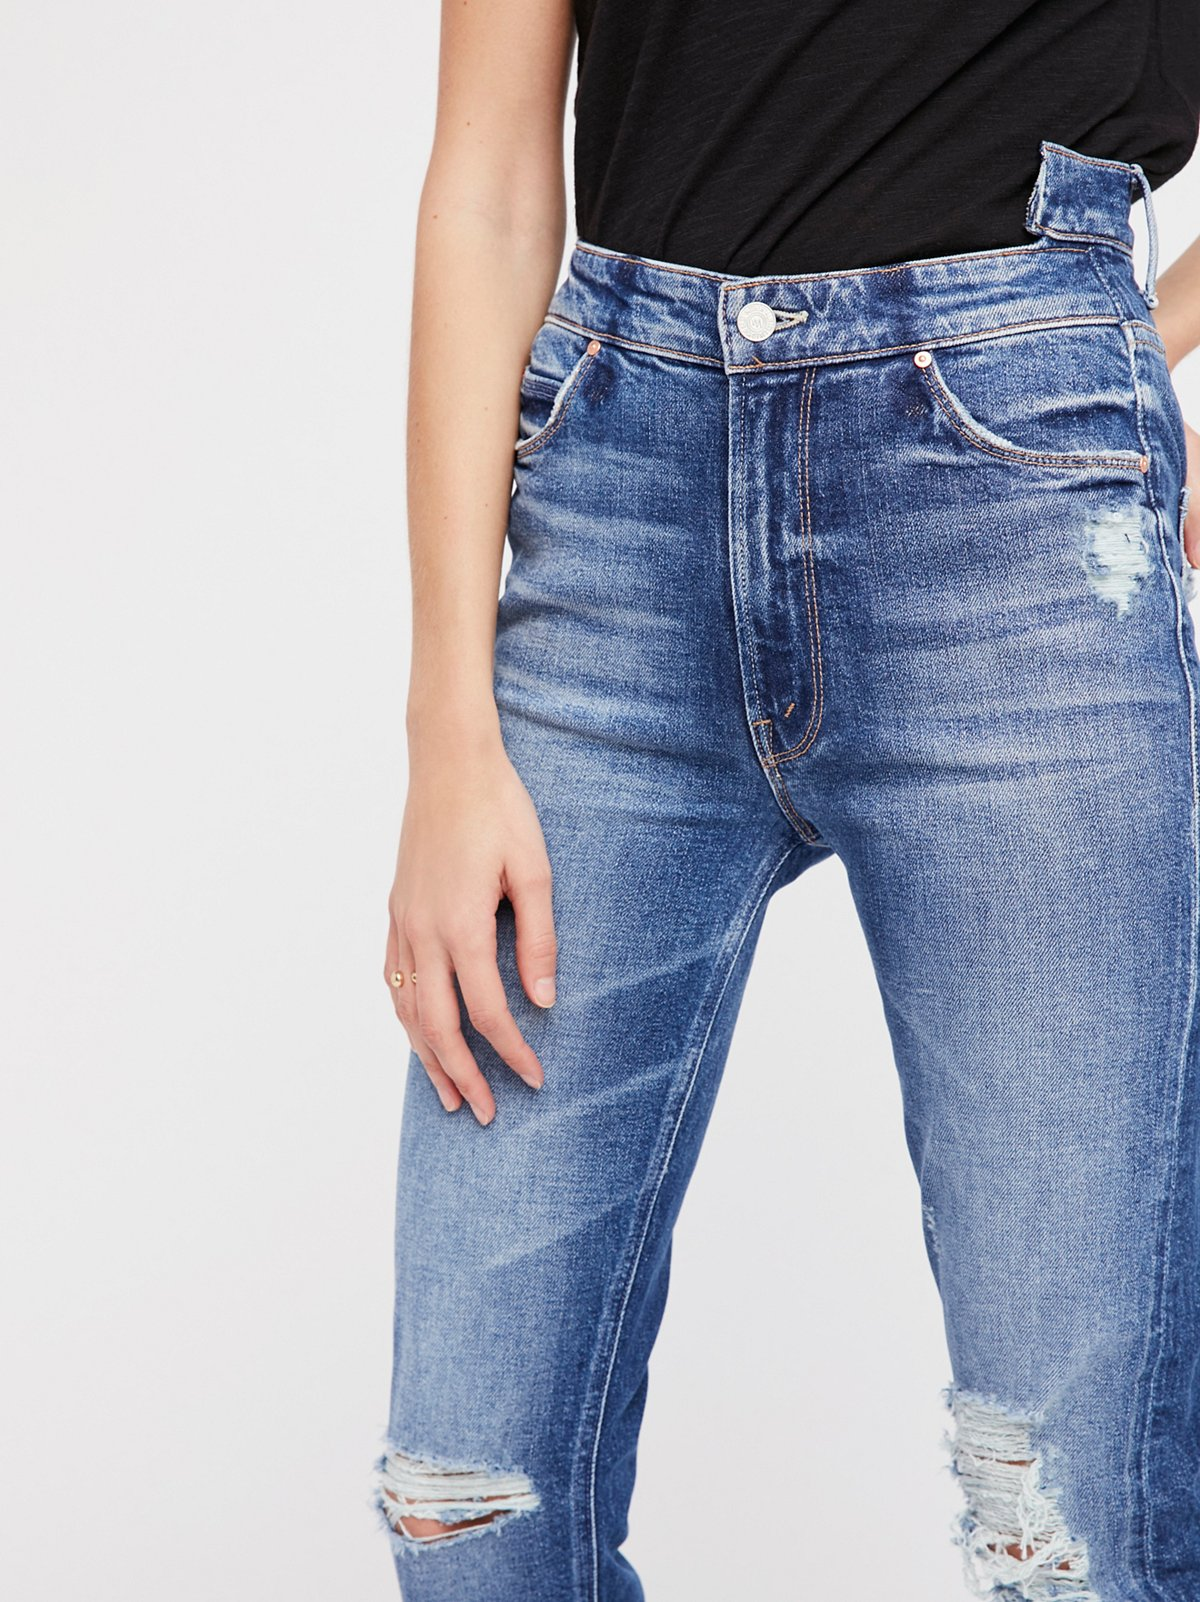 The Dazzler Shift Skinnies